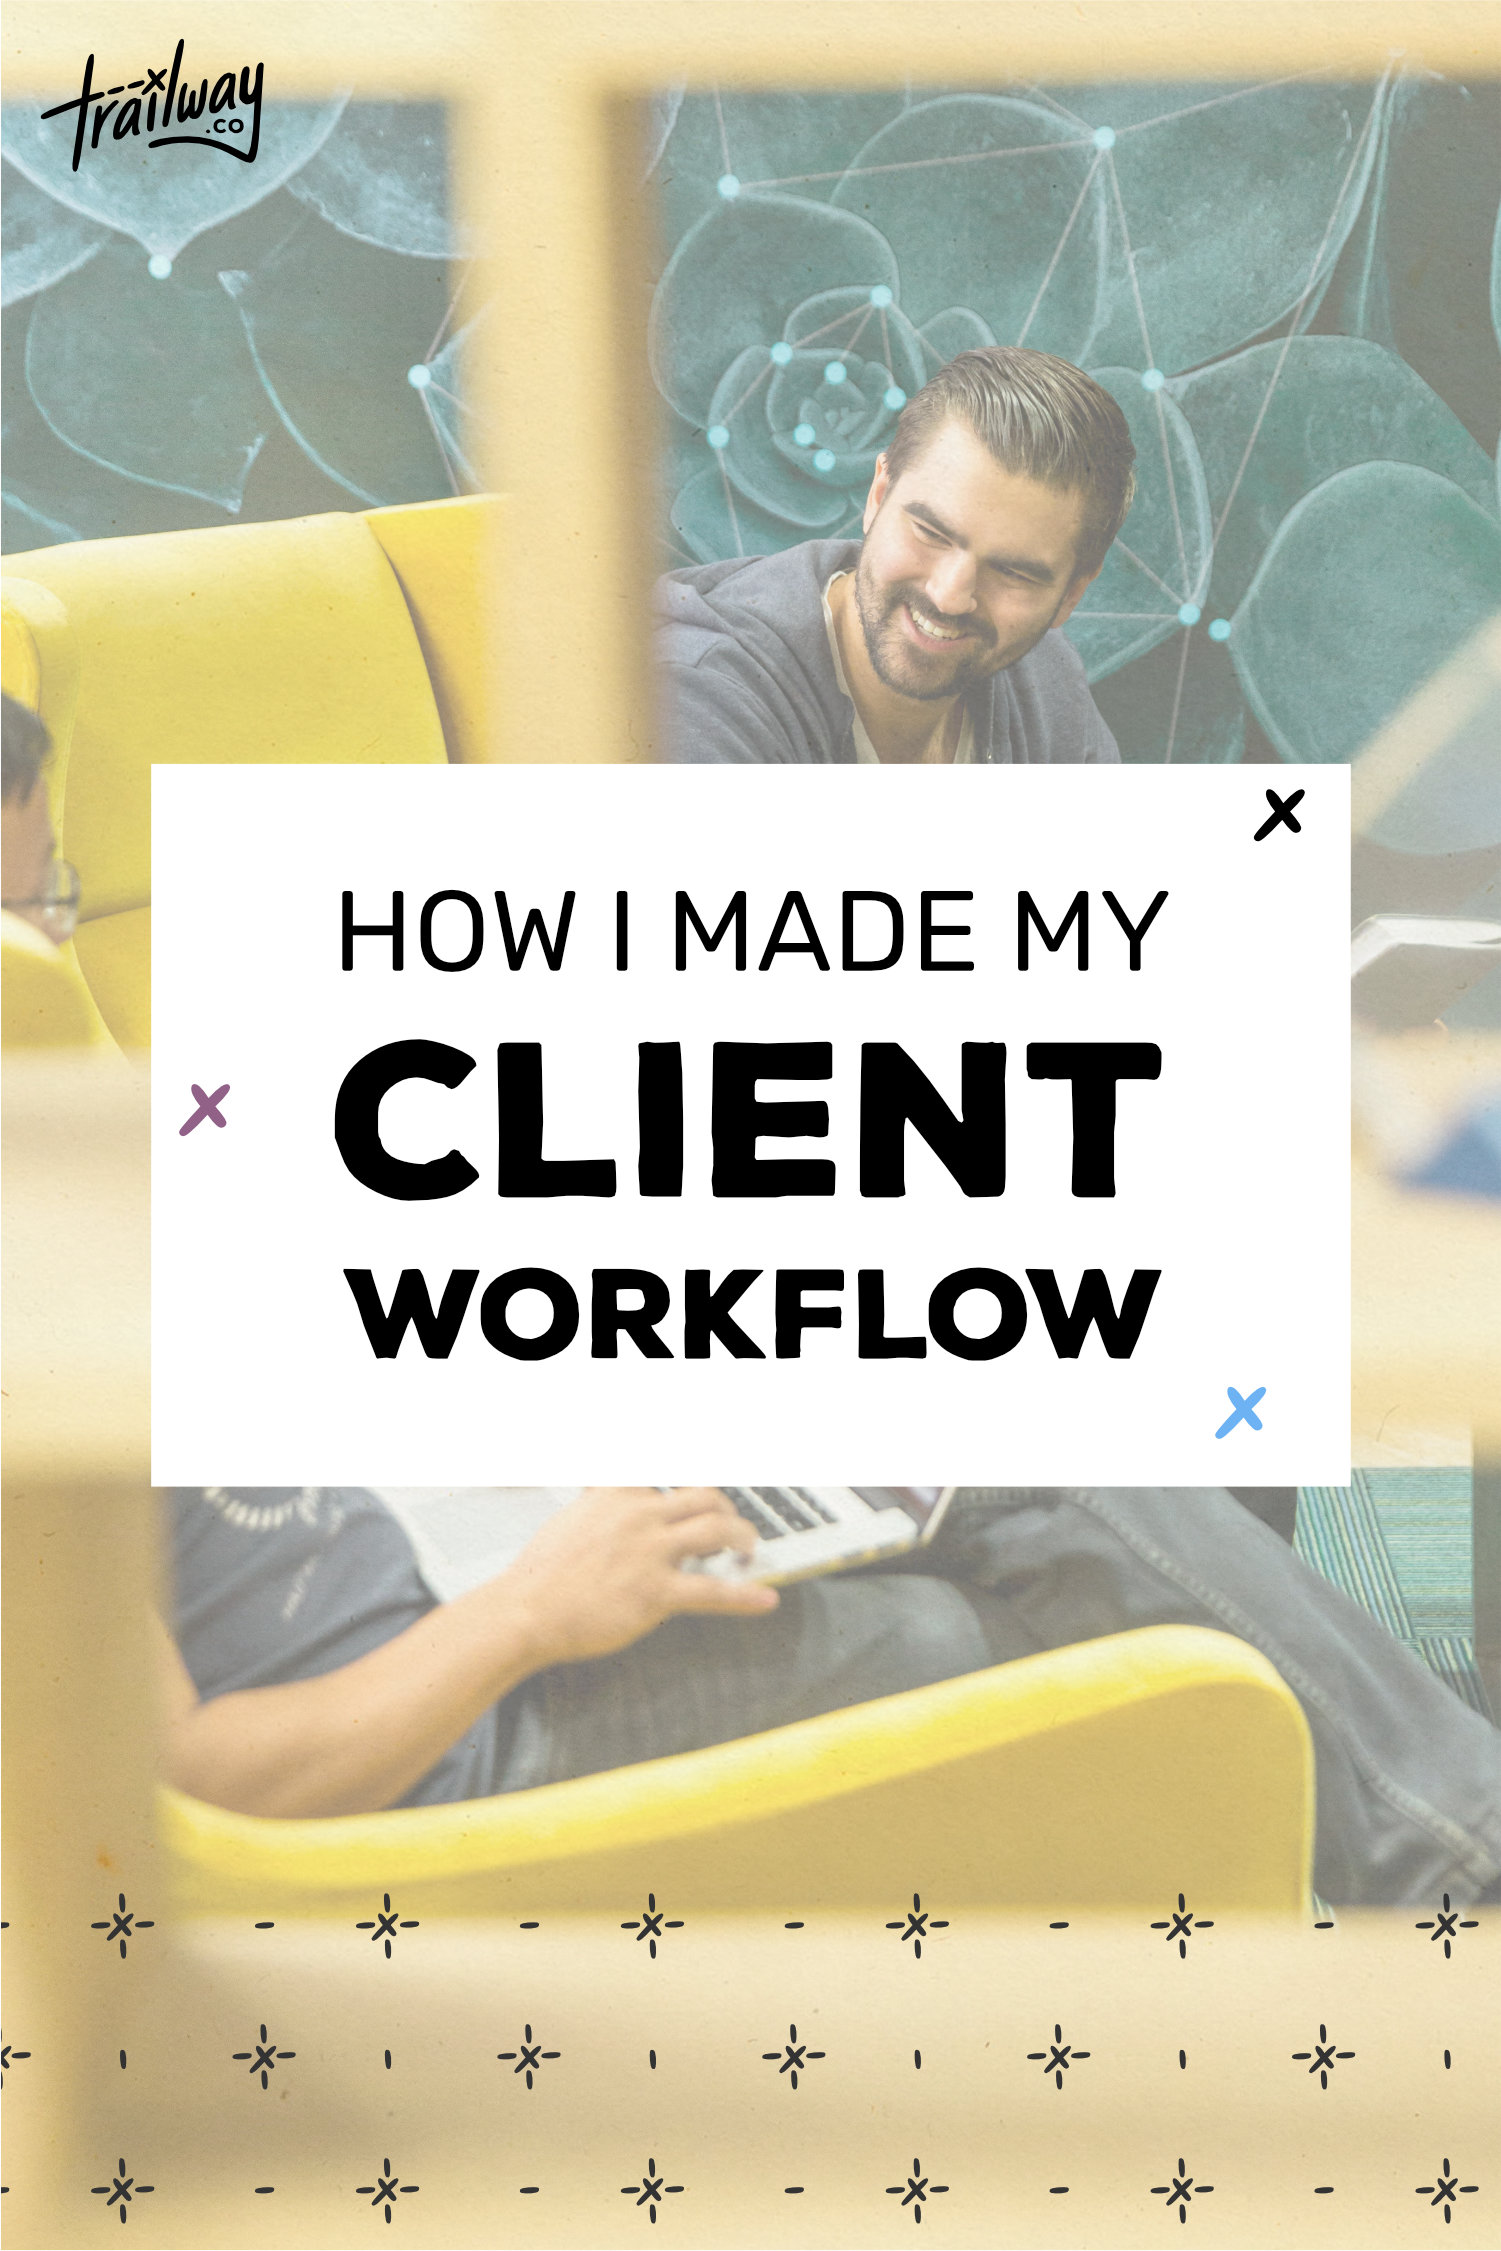 Developing a Client Workflow – http://pacificletters.com/news/client-workflow